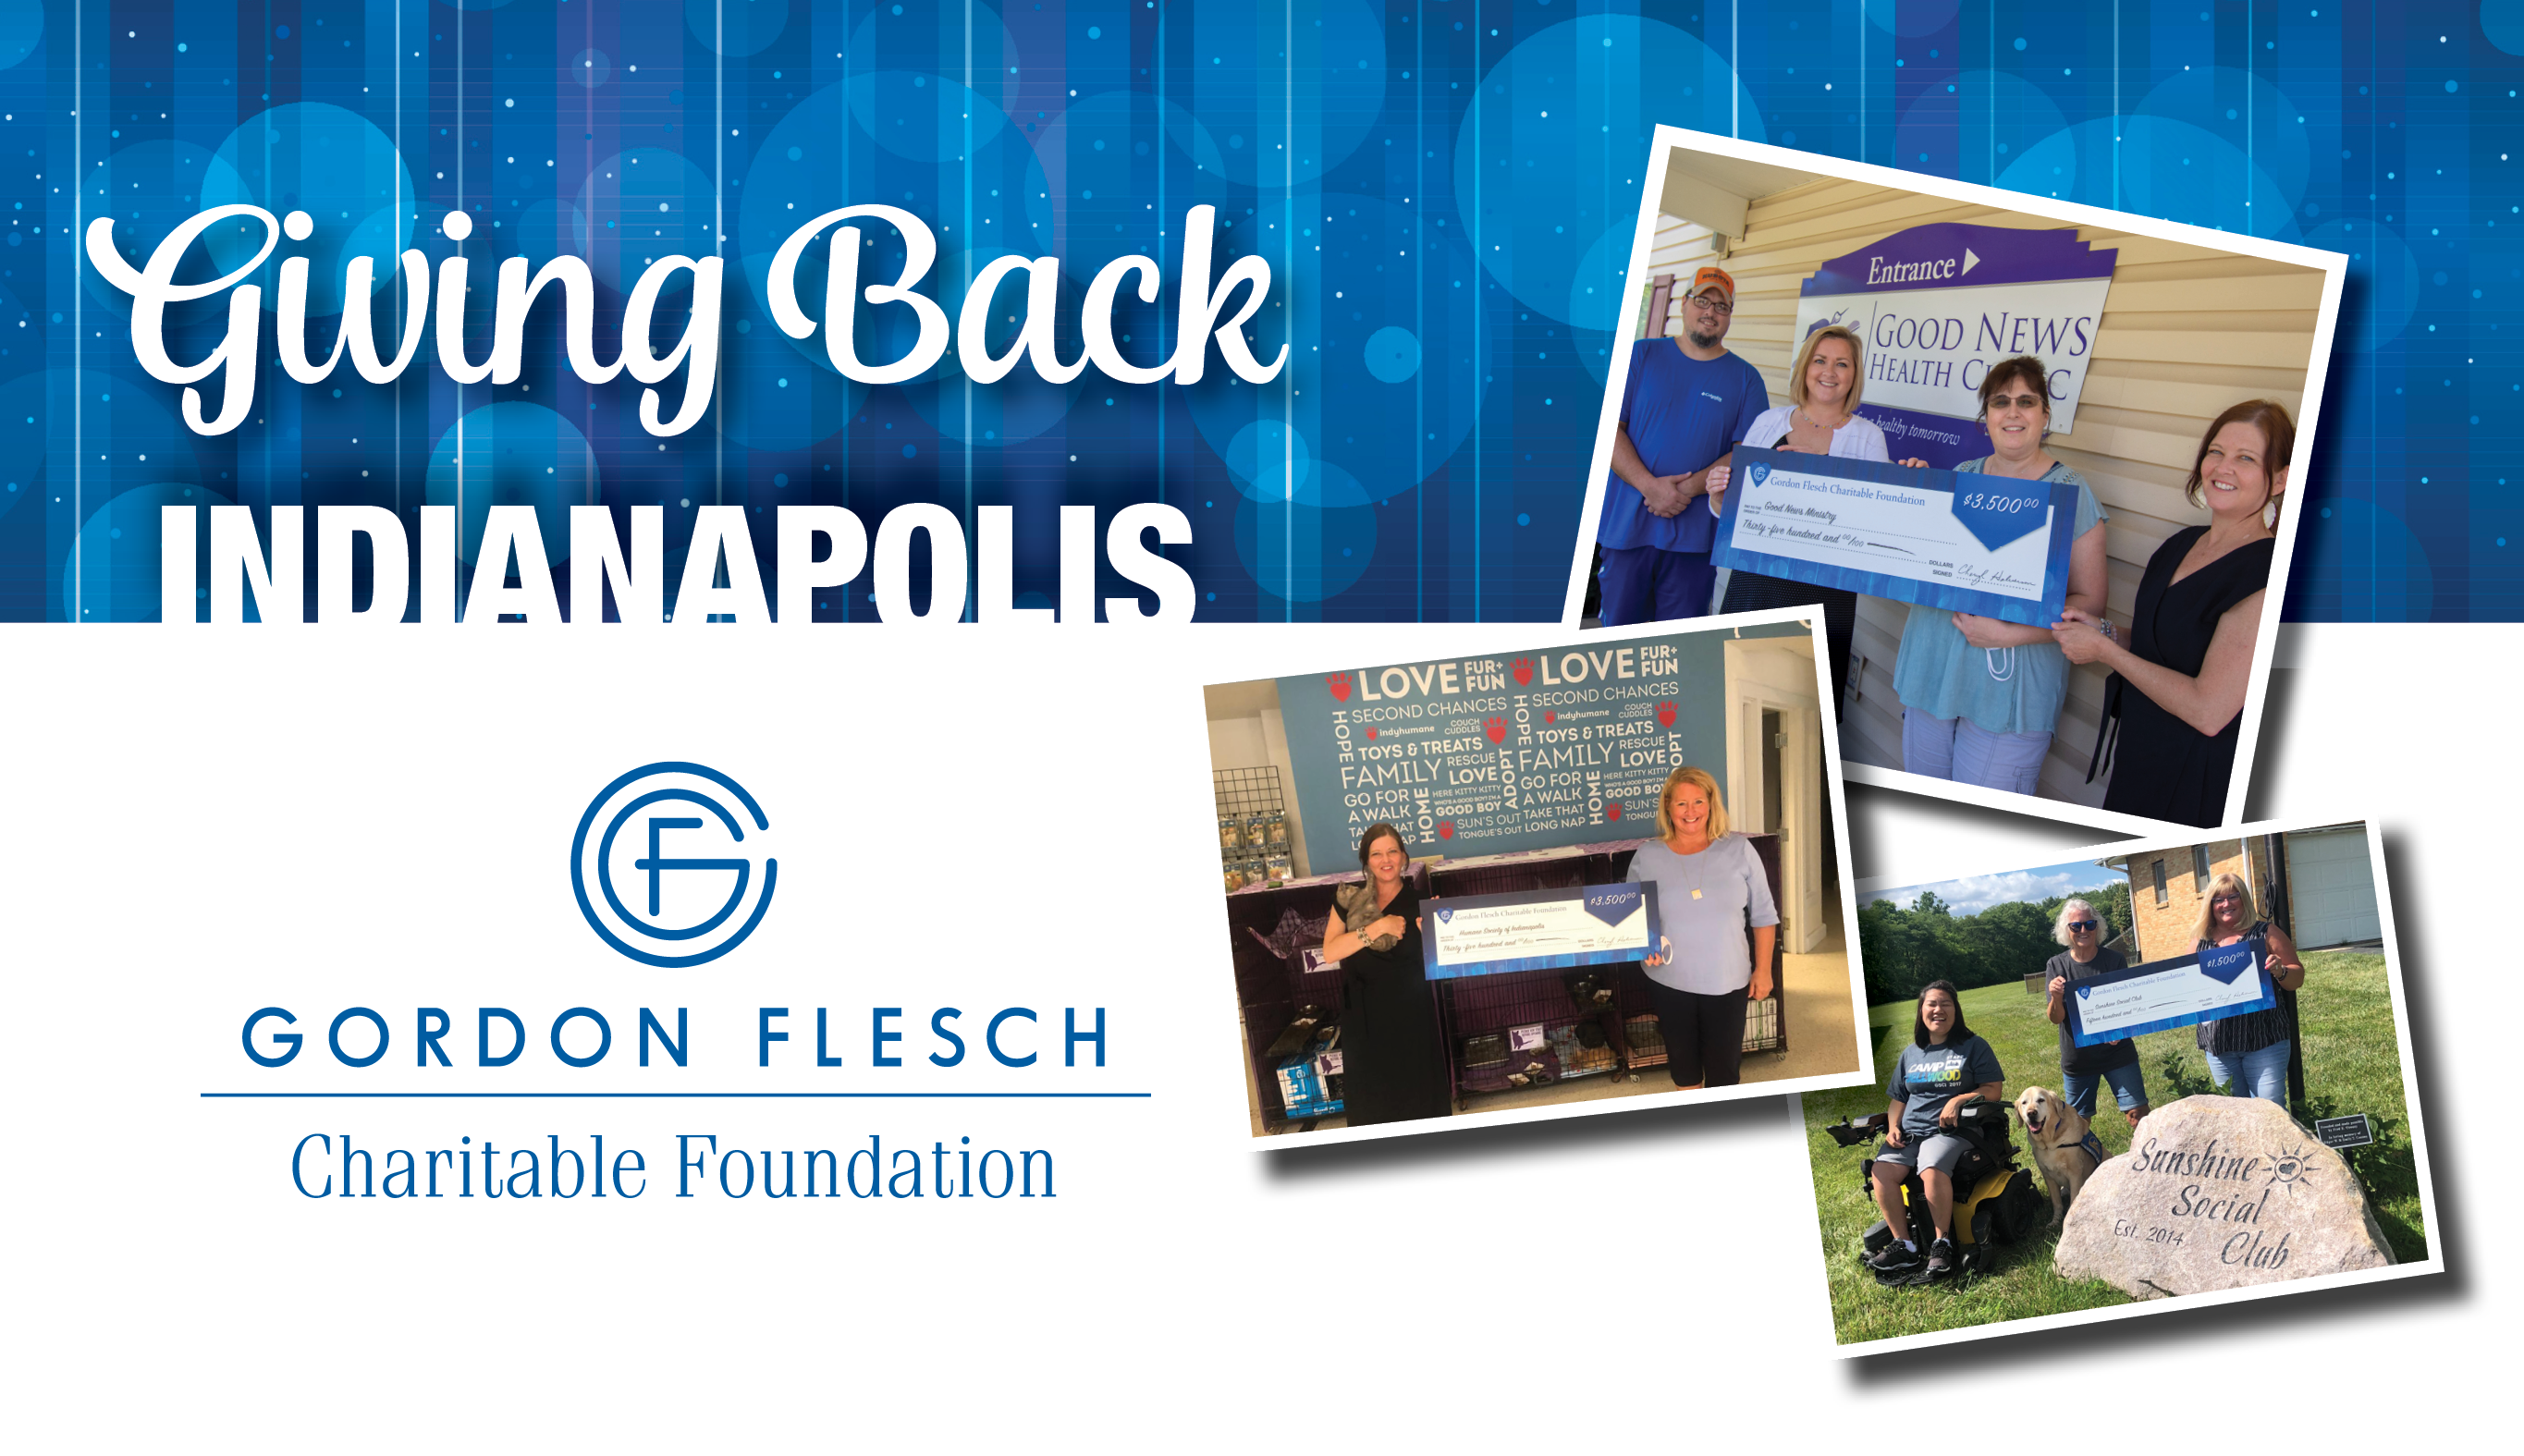 Gordon Flesch Charitable Foundation Donates $12,000 to Indianapolis-Area Charities